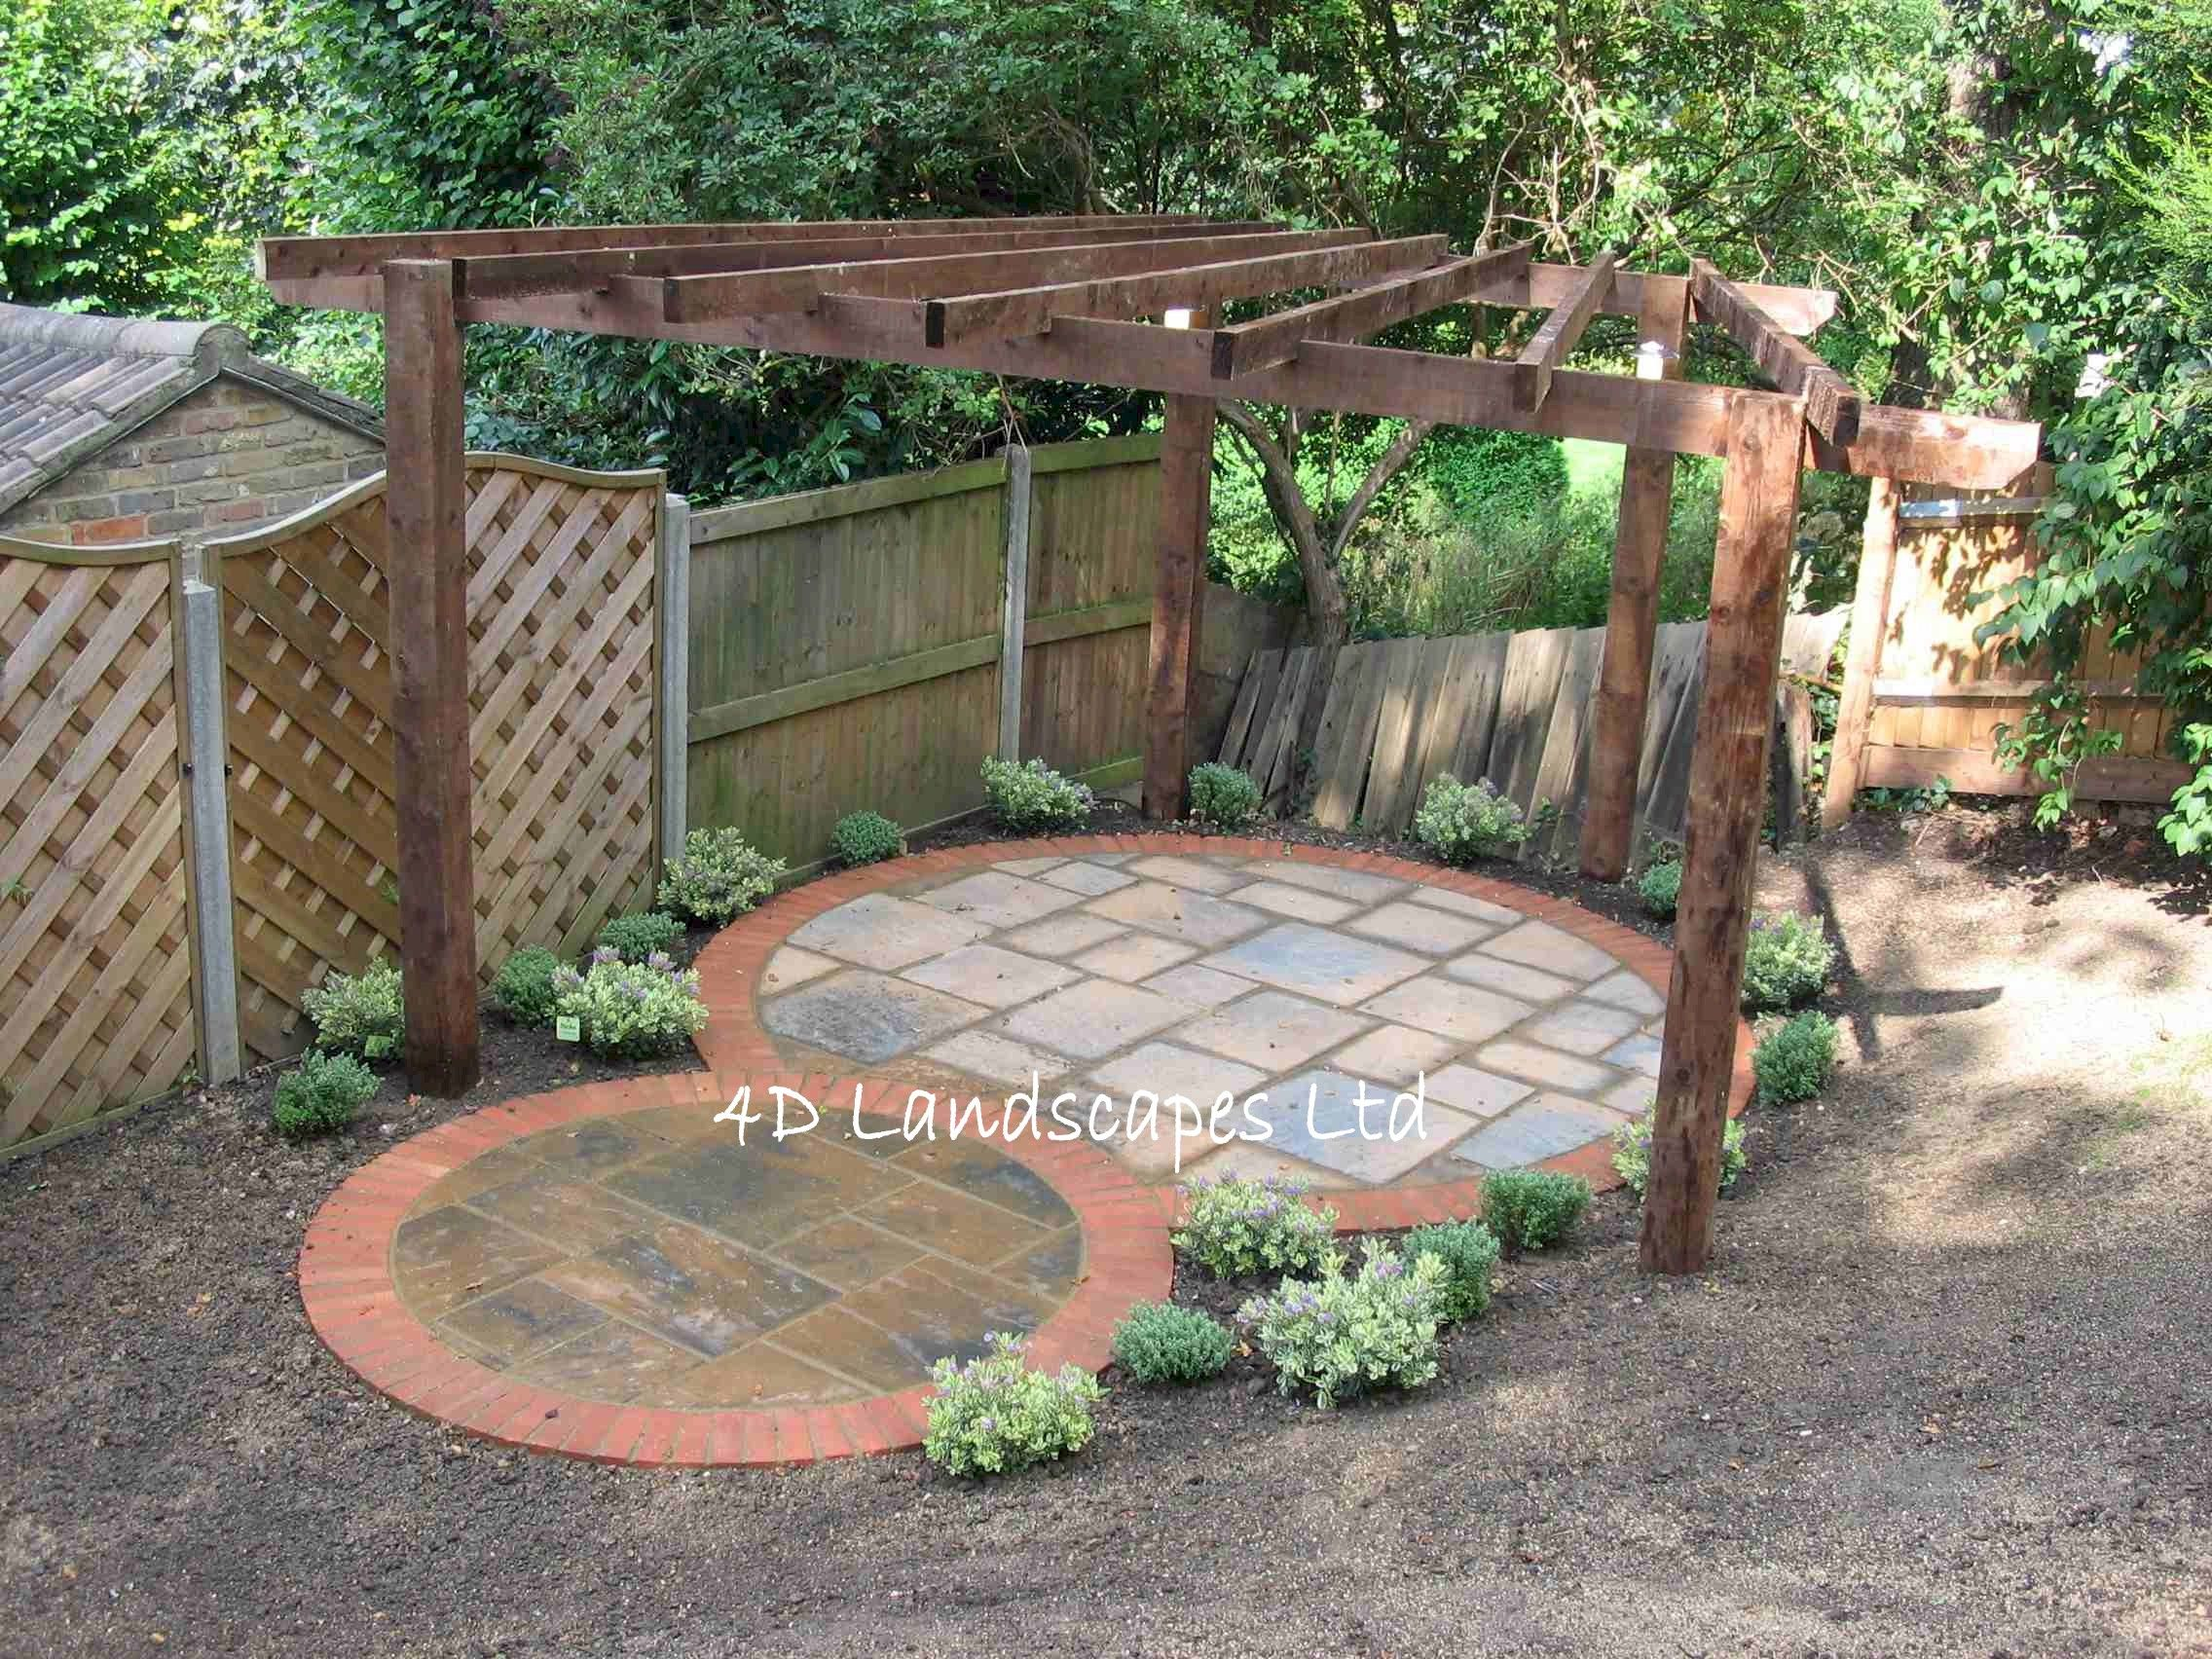 gorgeous circular patio with pergola from 4d landscape ltd